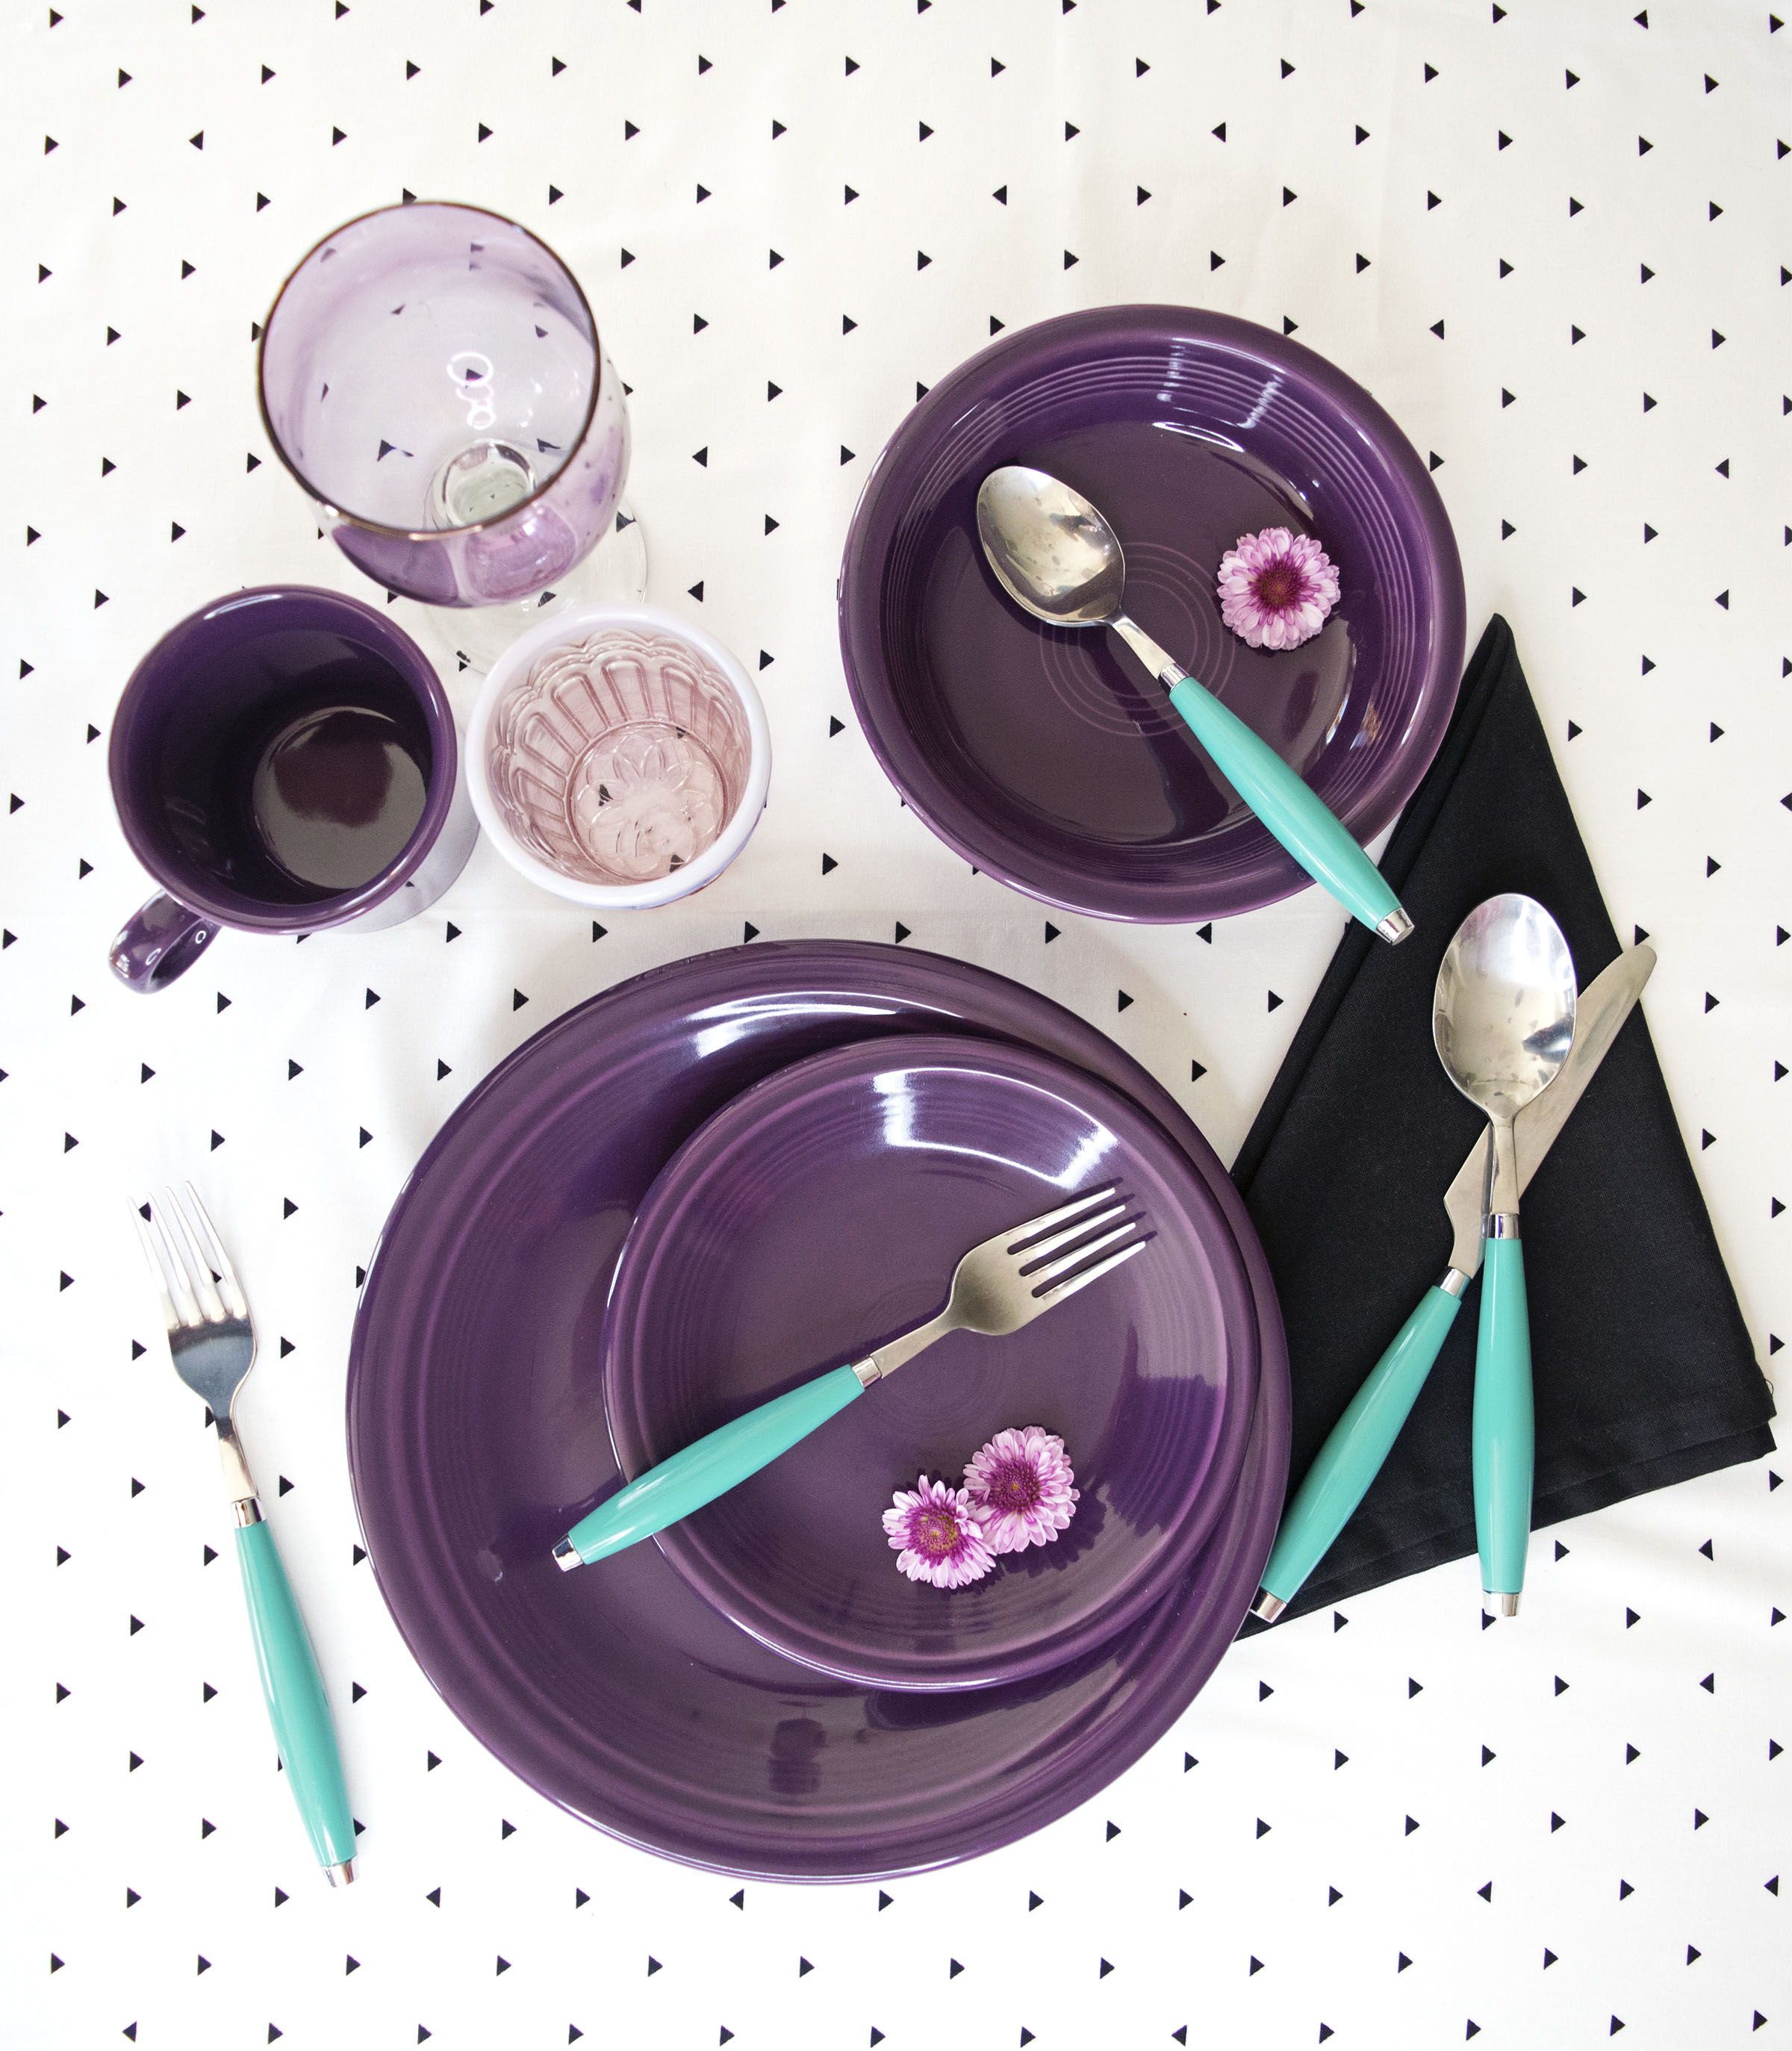 The dinnerware brand\u0027s newest color responds to trends in fashion and home decor. & Fiesta Dinnerware Introduces Its 50th Color | Gifts \u0026 Dec